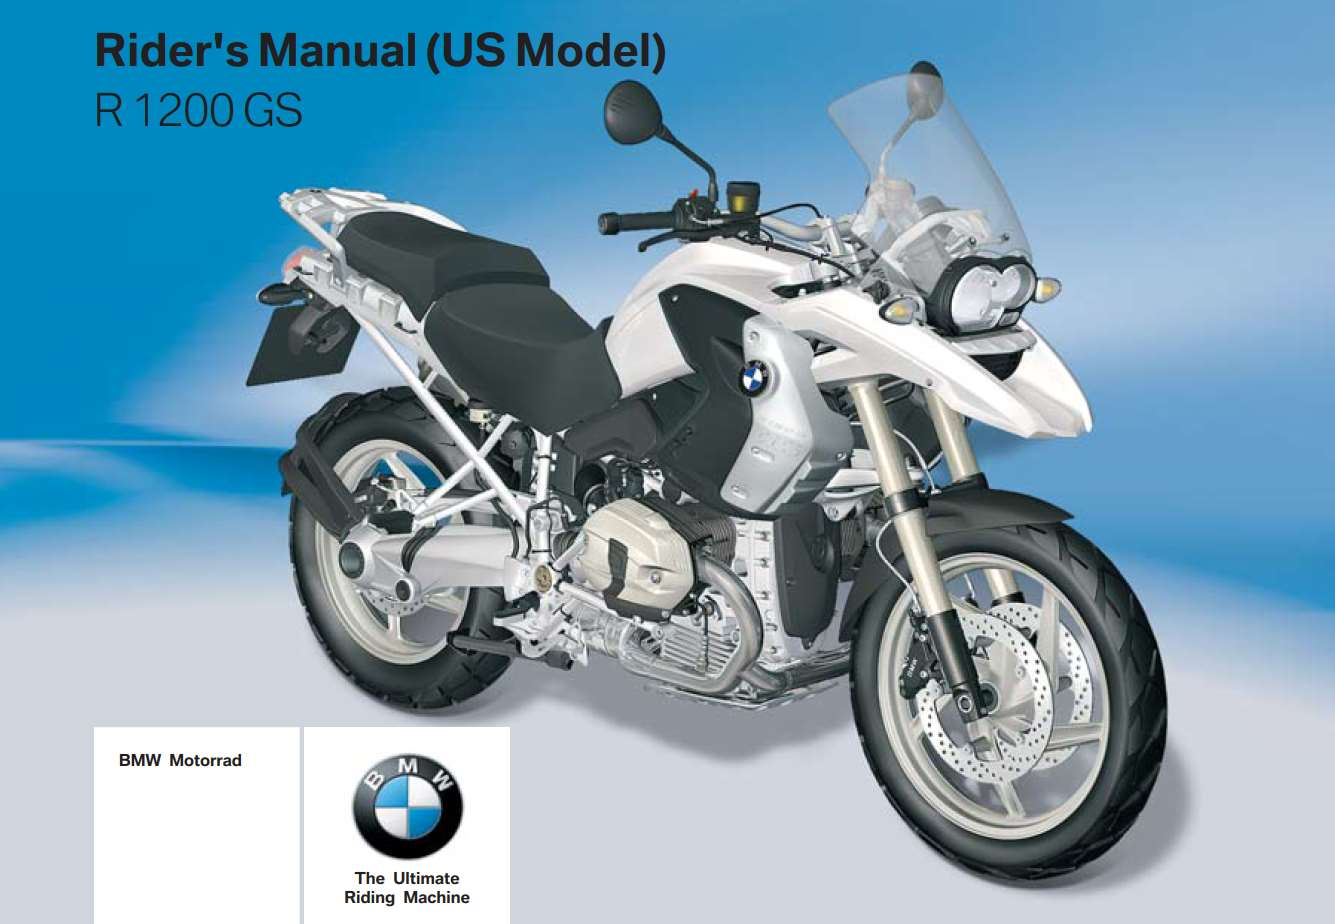 BMW R 1200 GS 2010 Owner's Manual – PDF Download